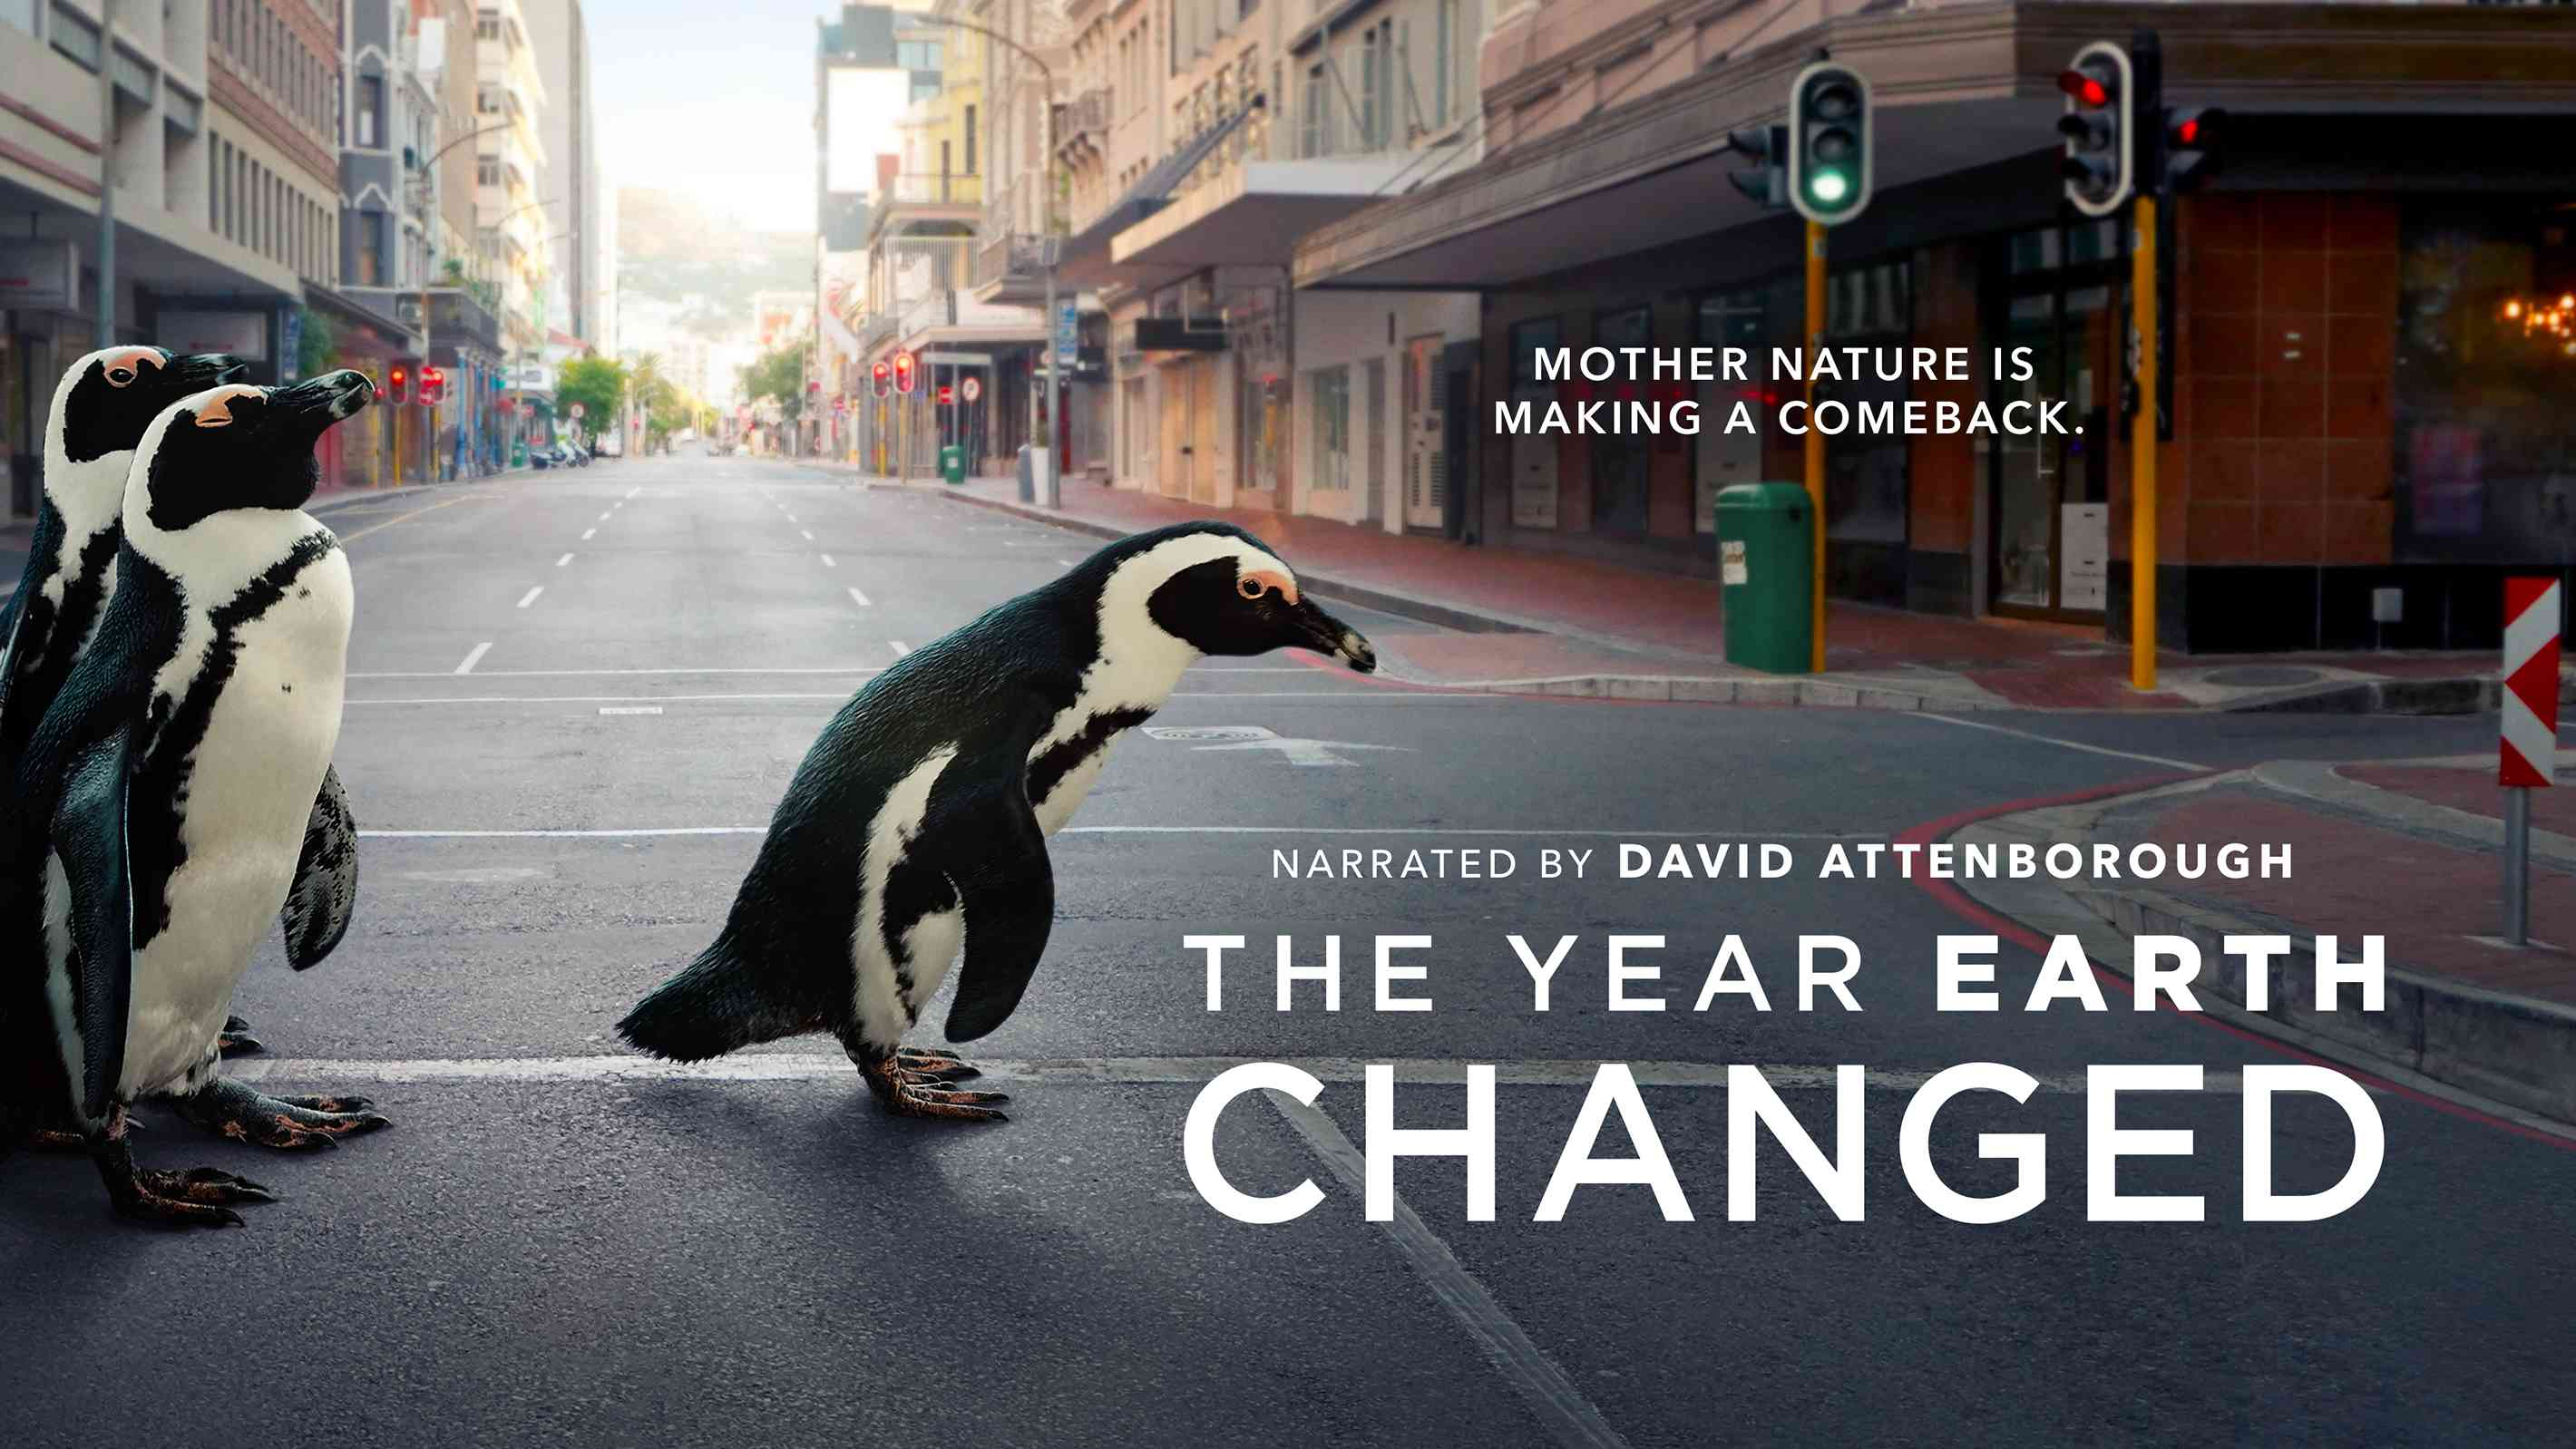 Key art for the Apple TV documentary 'The Year Earth Changed'